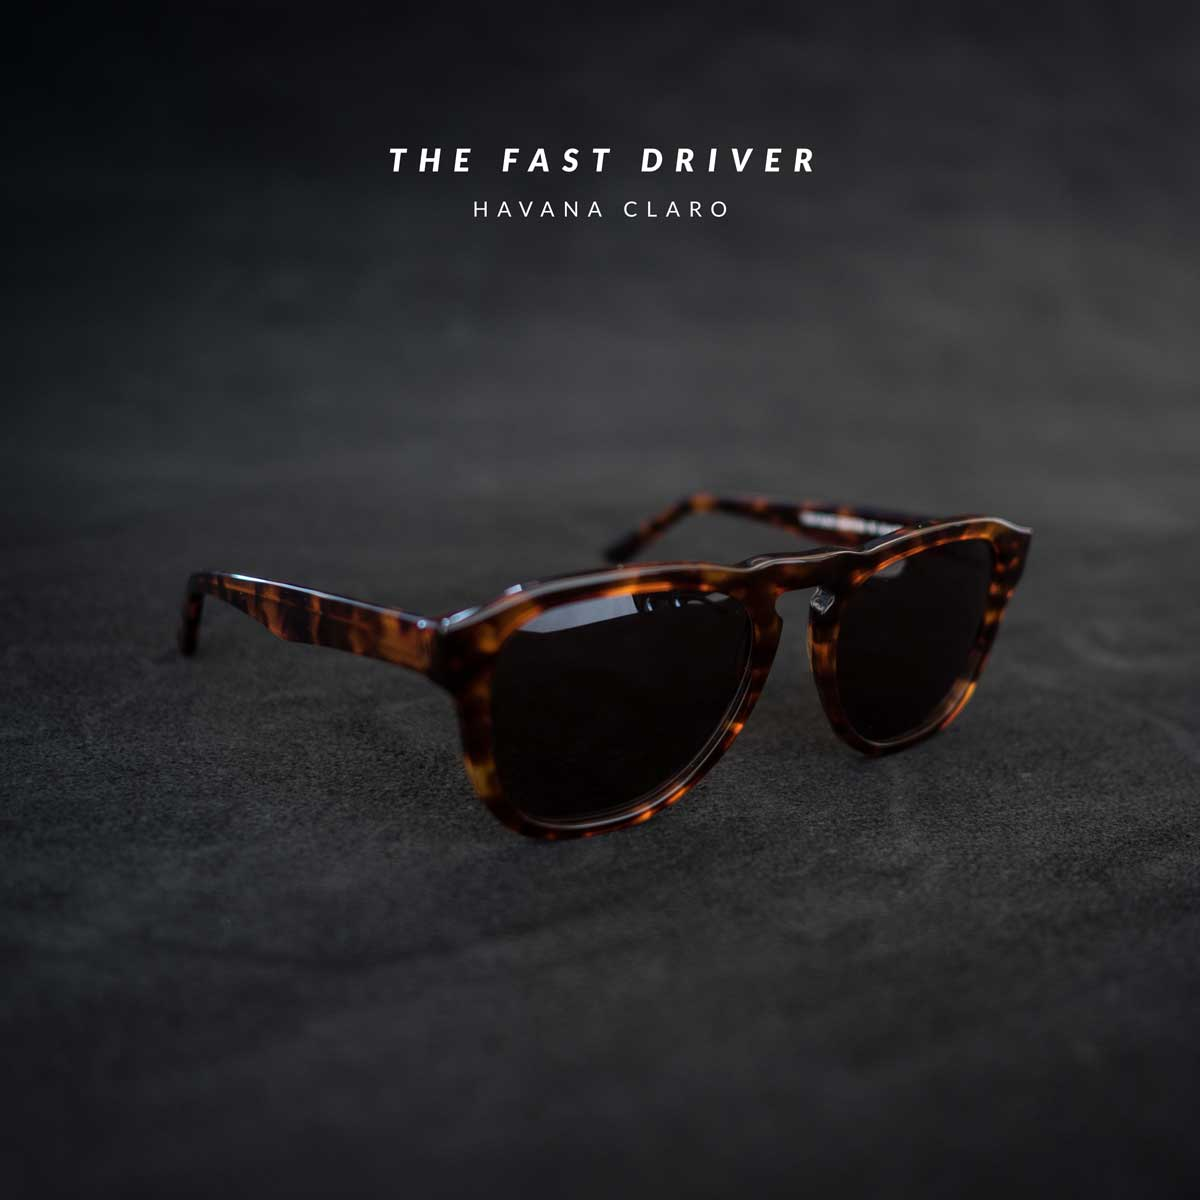 Óculos THE FAST DRIVER - REVER + Braveman - BRAVEMAN LEATHER GOODS